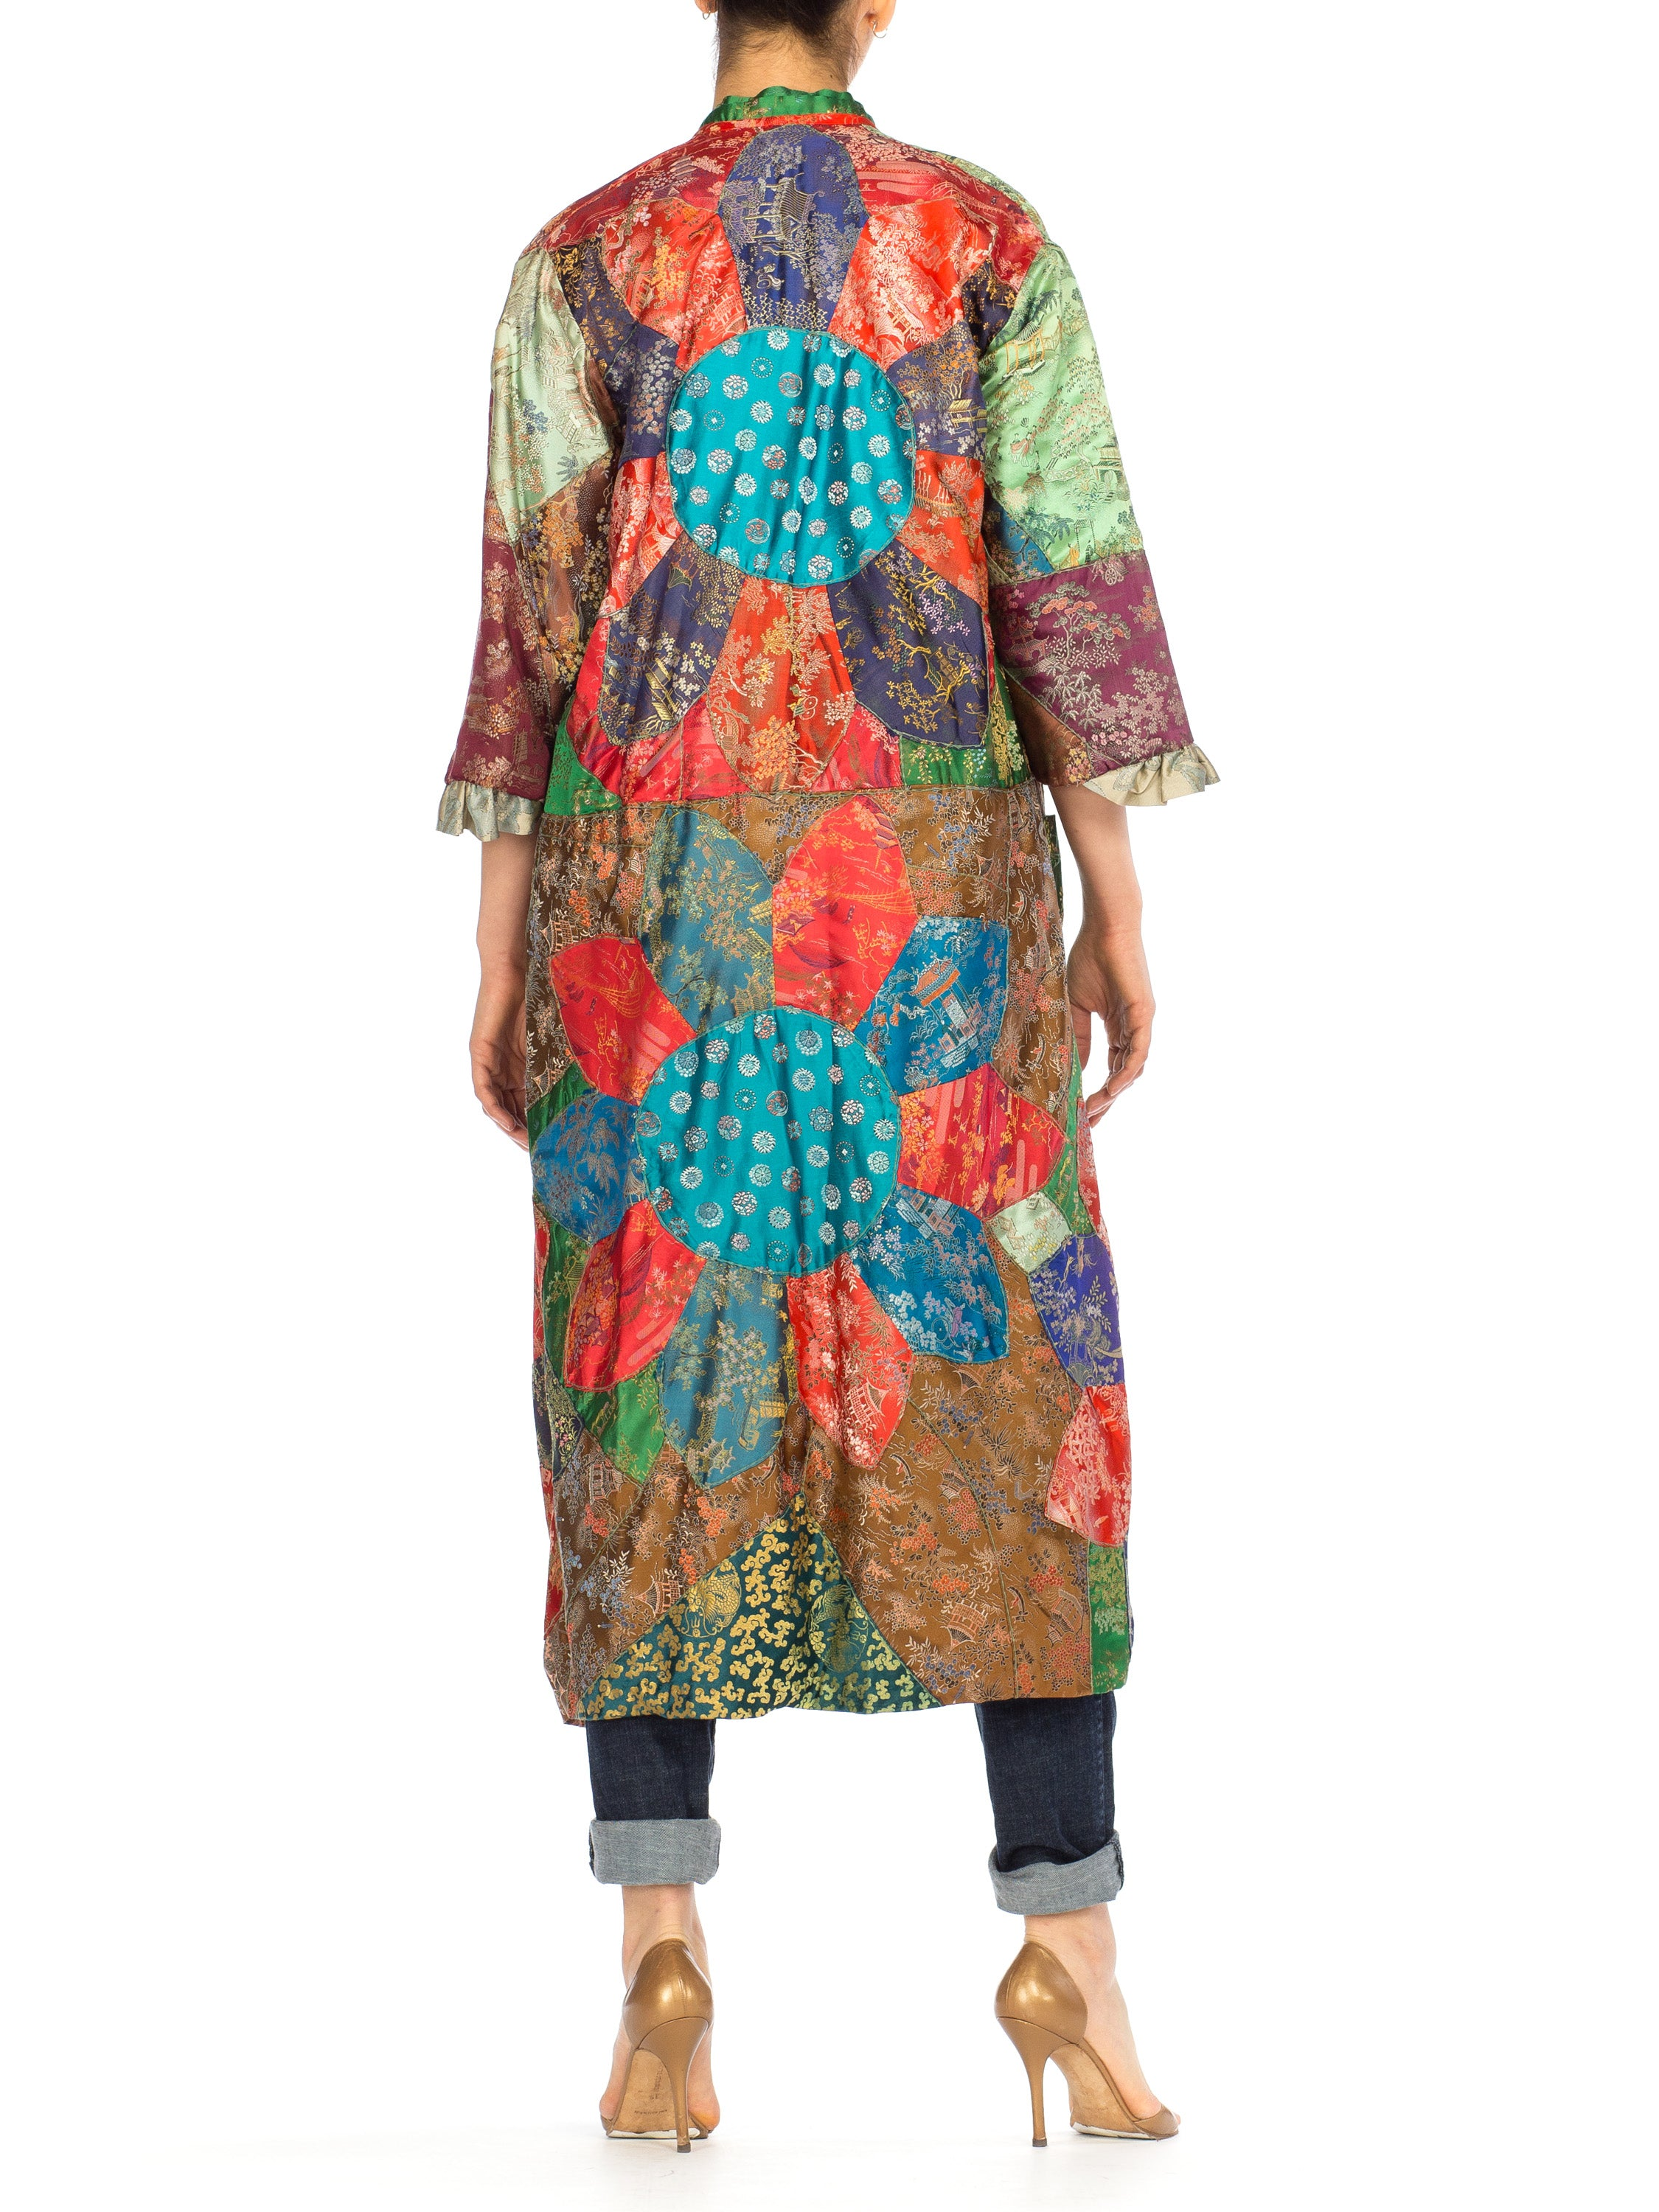 Morphew Collection Silk Brocade Antique Fabric Patchwork Duster Coat